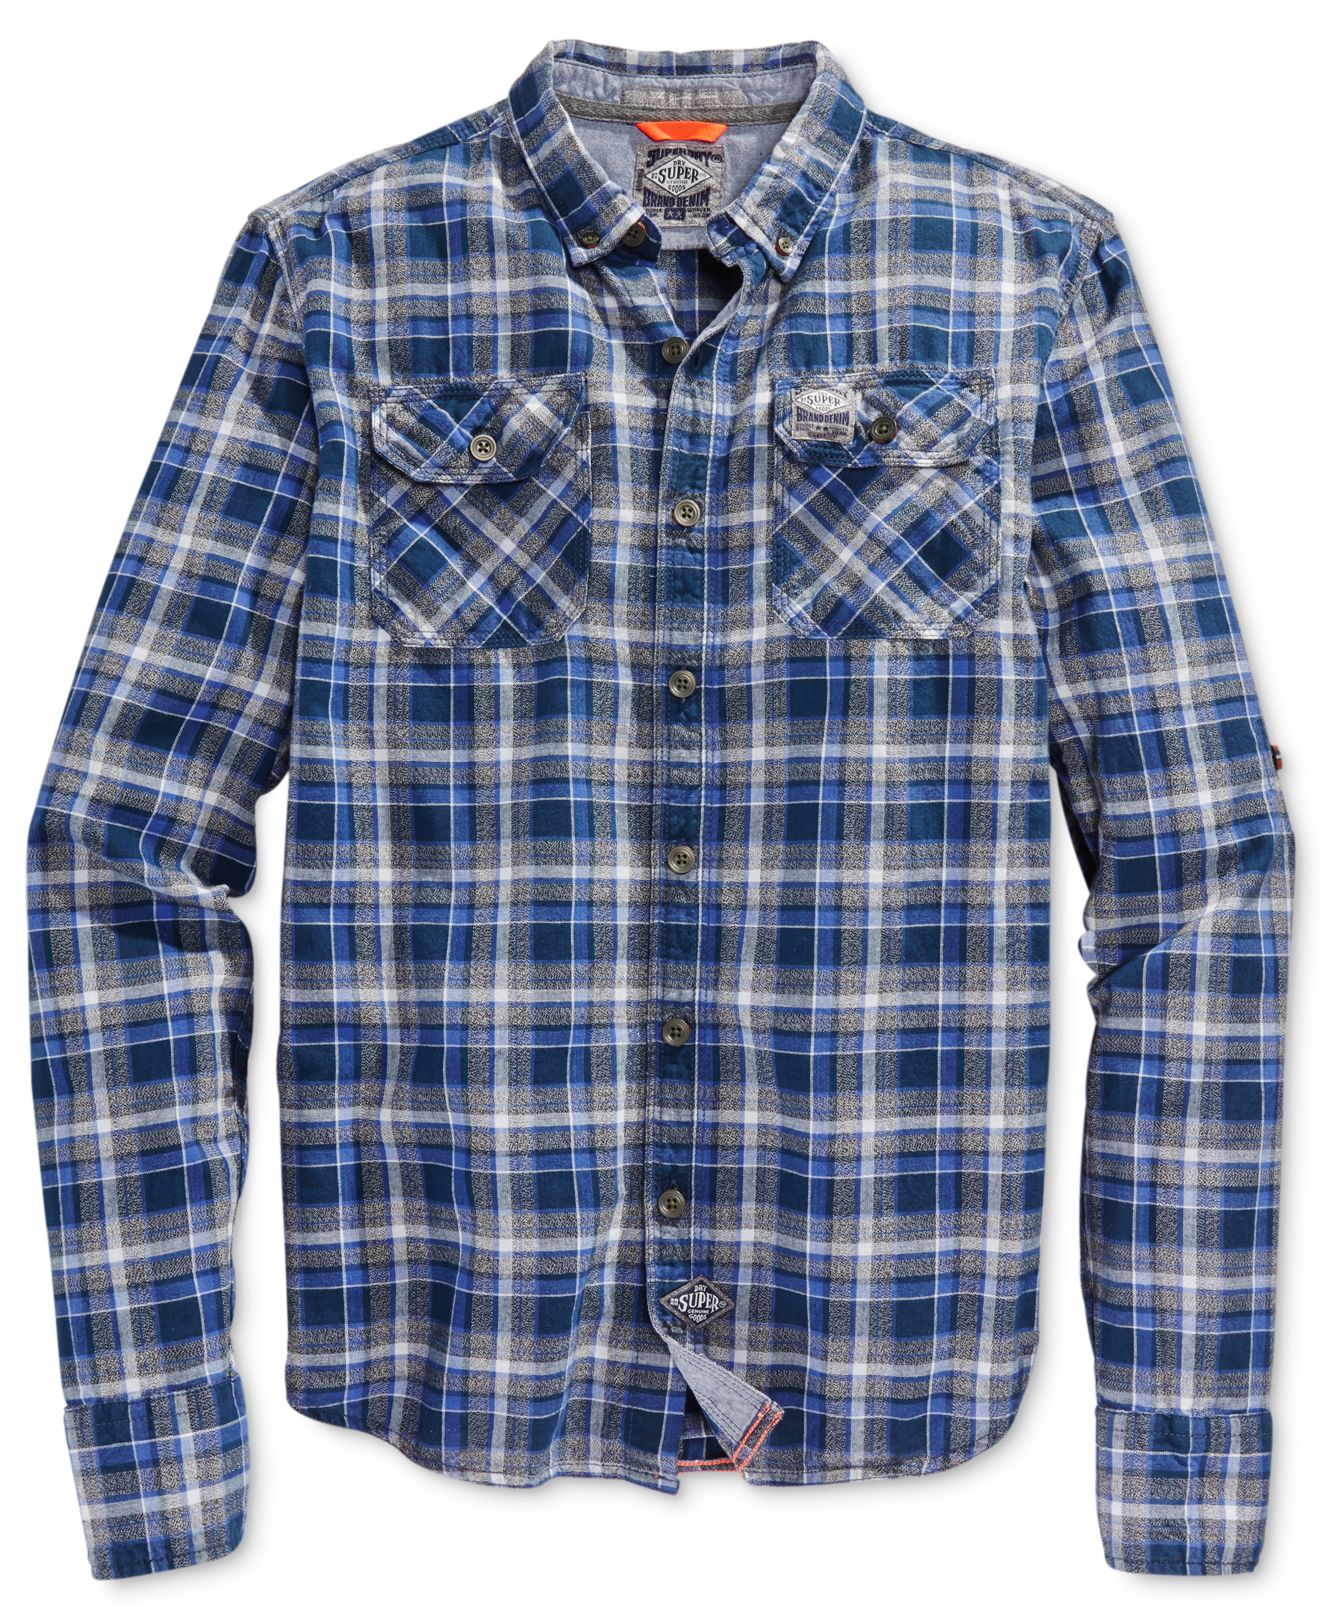 Latest Collections Online Grindlesawn Long Sleeve Shirt Superdry Buy Cheap Clearance Hot Xpe5L